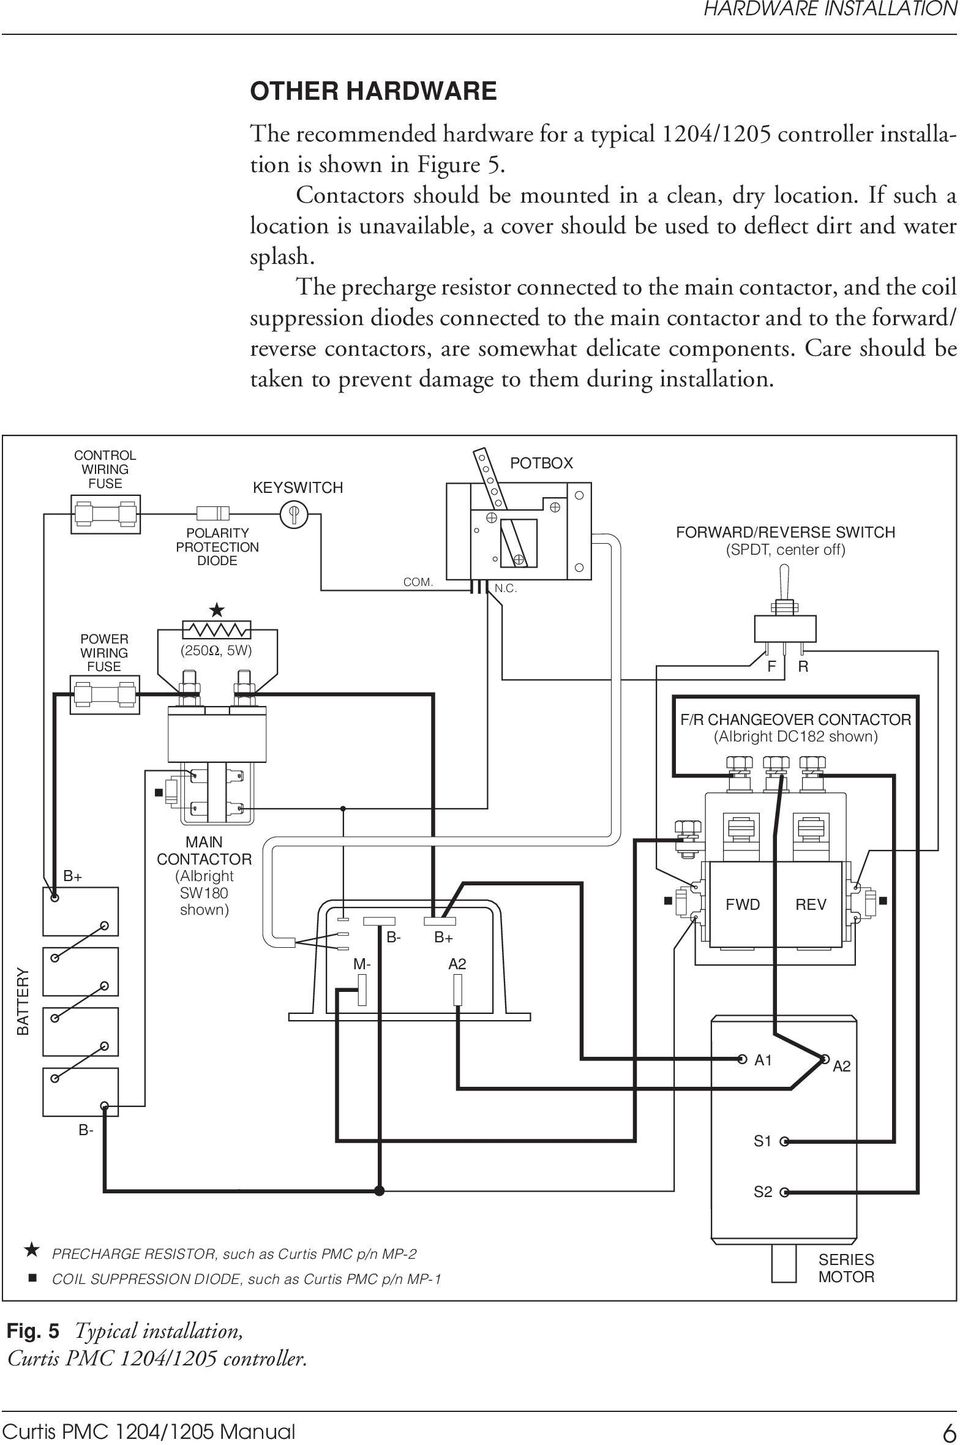 manual 1204 5 motor controllers curtis pmc pdf free download sevcon controller wiring diagram curtis instruments wiring diagrams #13